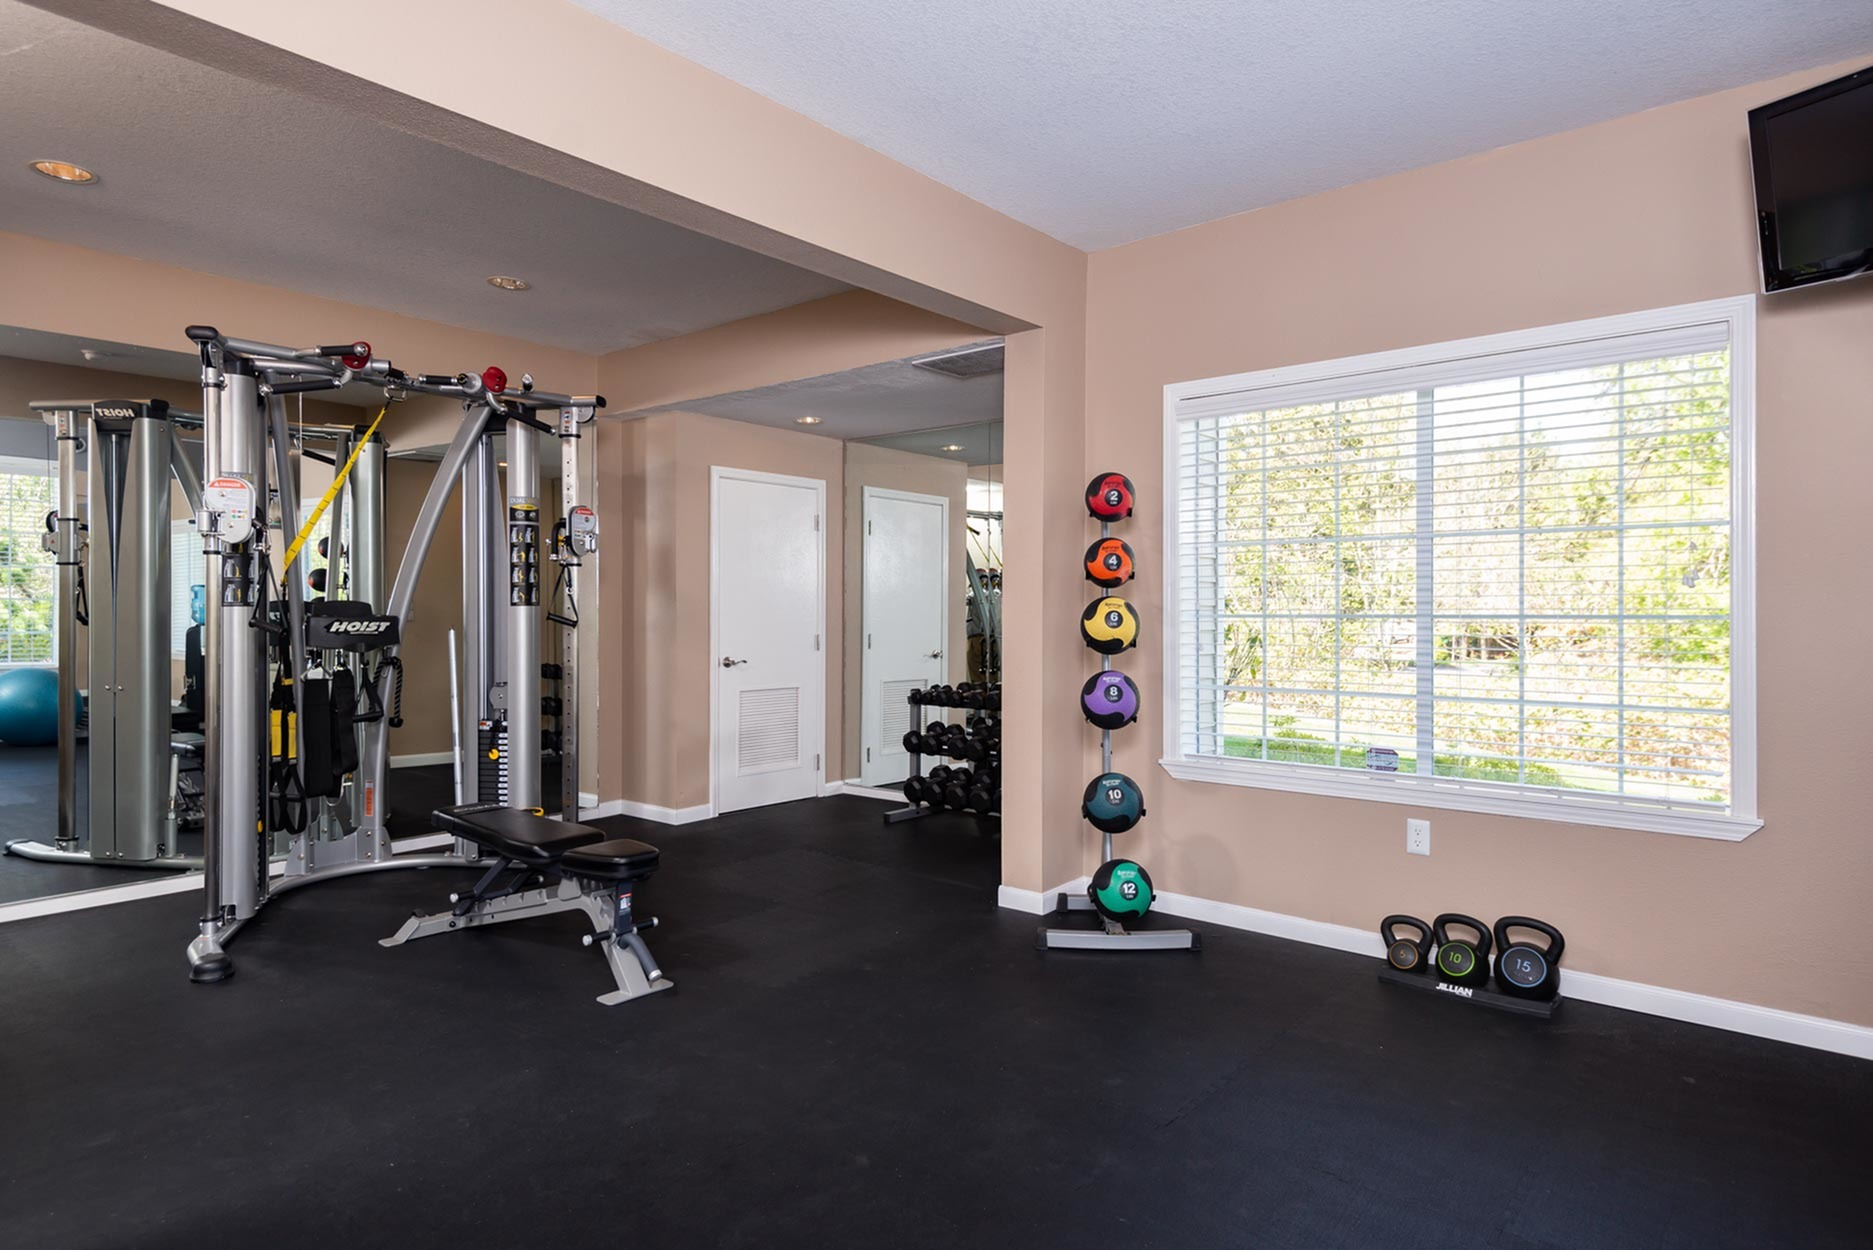 Image of Fitness Center for Murrayhill Park Apartments